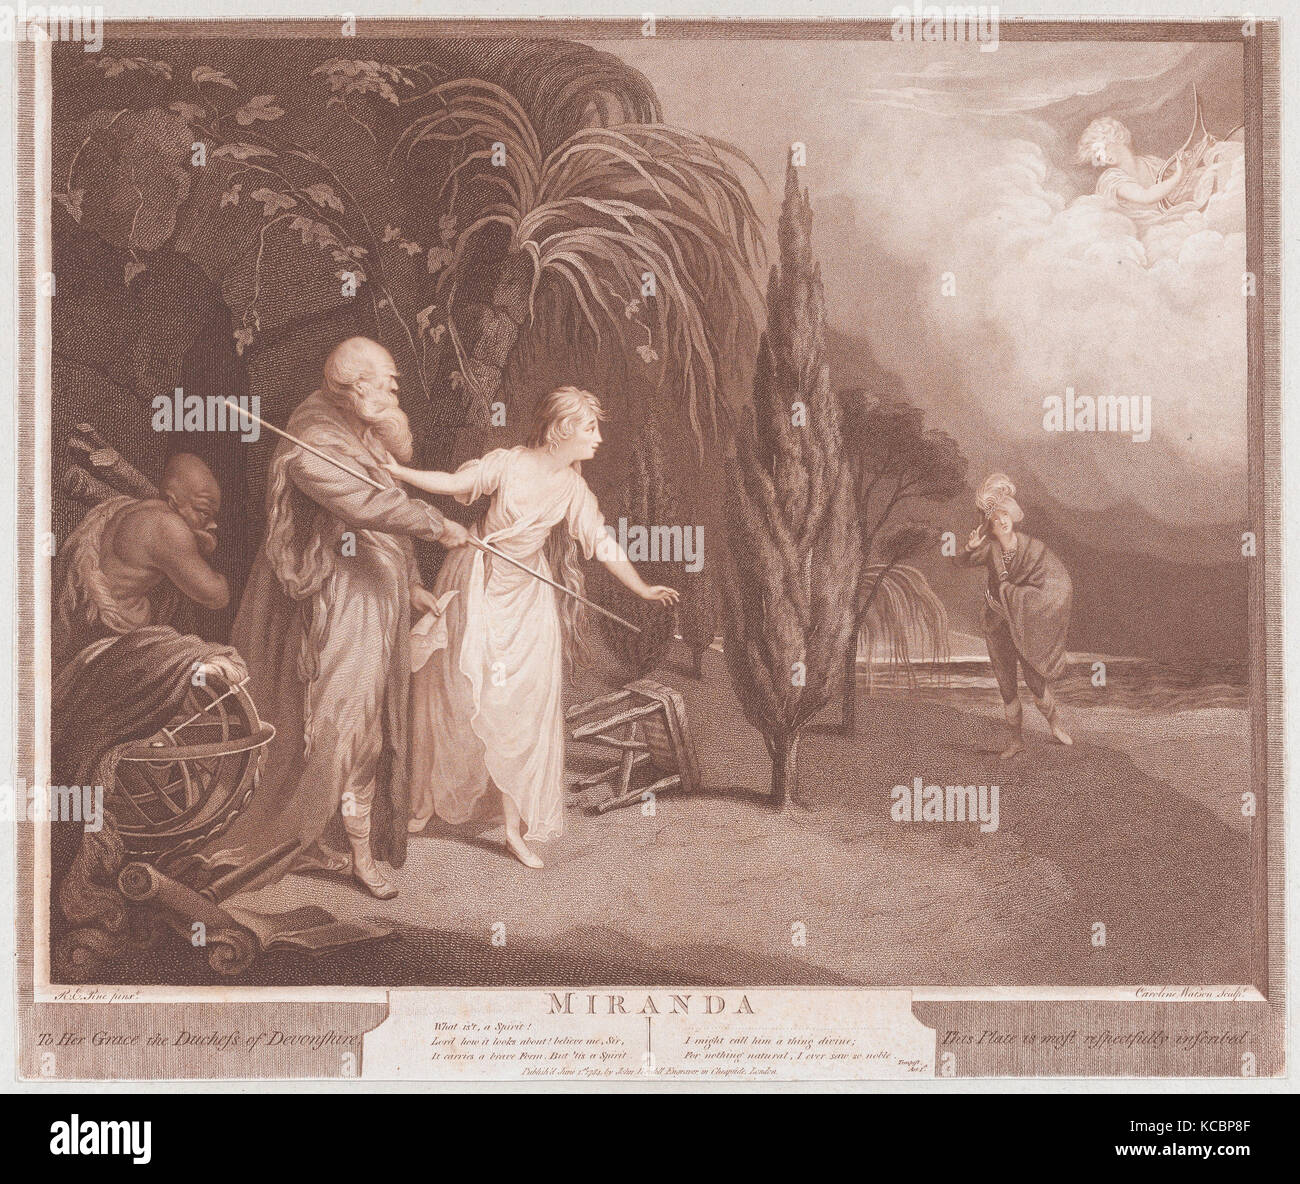 the tempest by shakespeare We will be talking about two very different adaptations of shakespeare's play the tempest this first analysis focuses on a comparative study between the play the tempest by william.